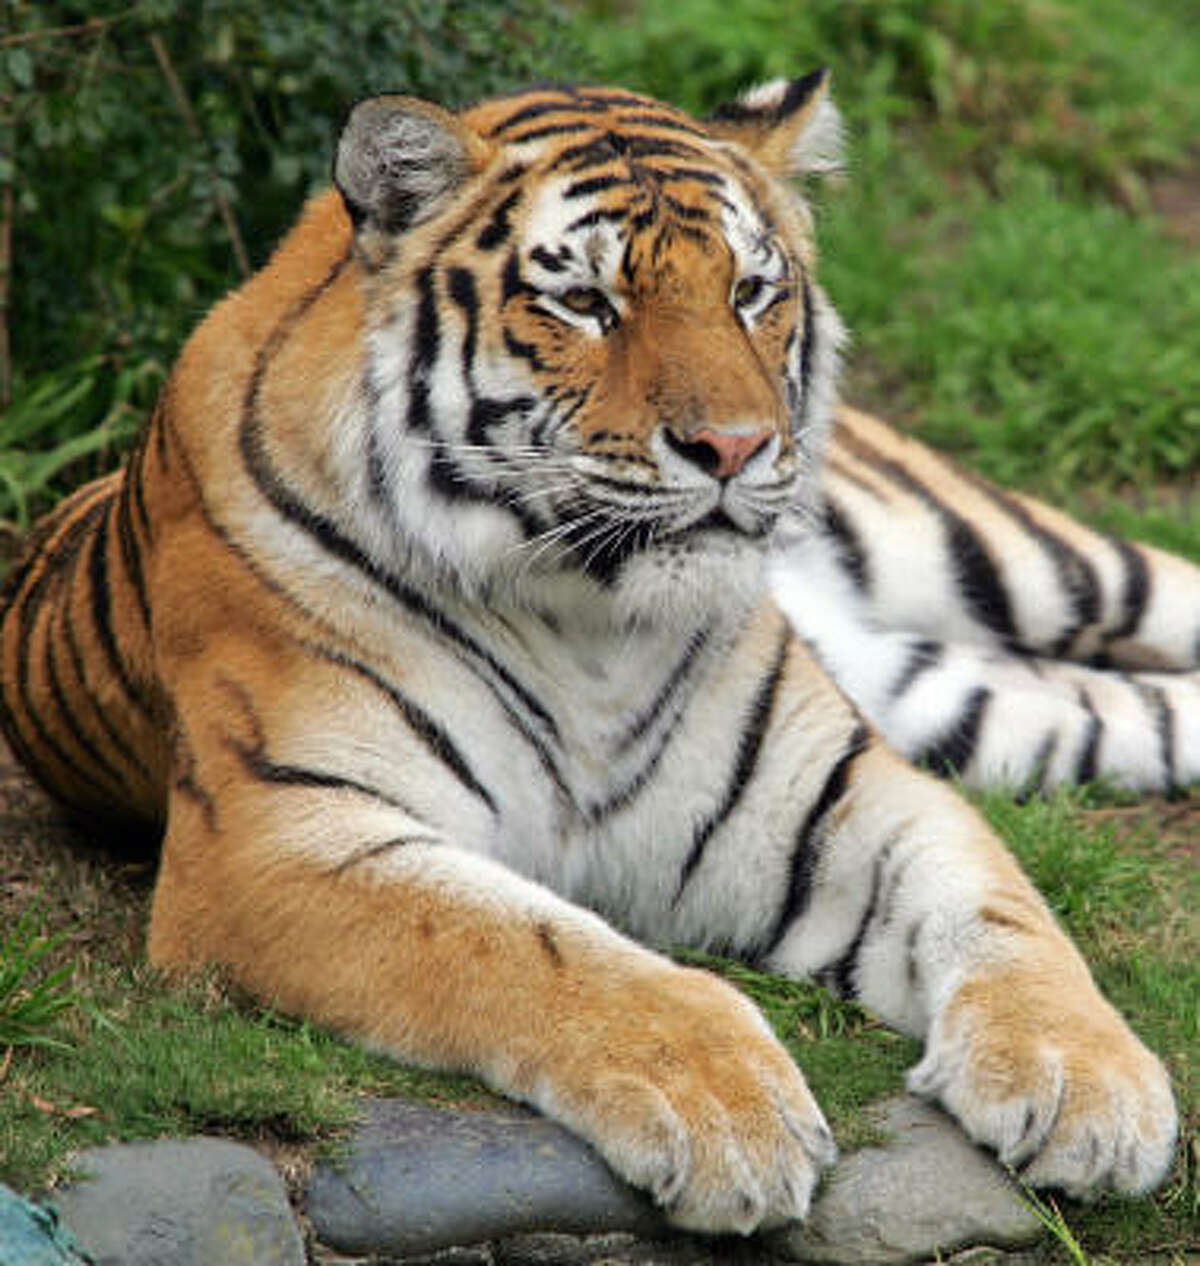 Tatiana, a Siberian tiger at the San Francisco Zoo shown in this file photo, was one of two such animals in the zoo's collections, according to its Web site.